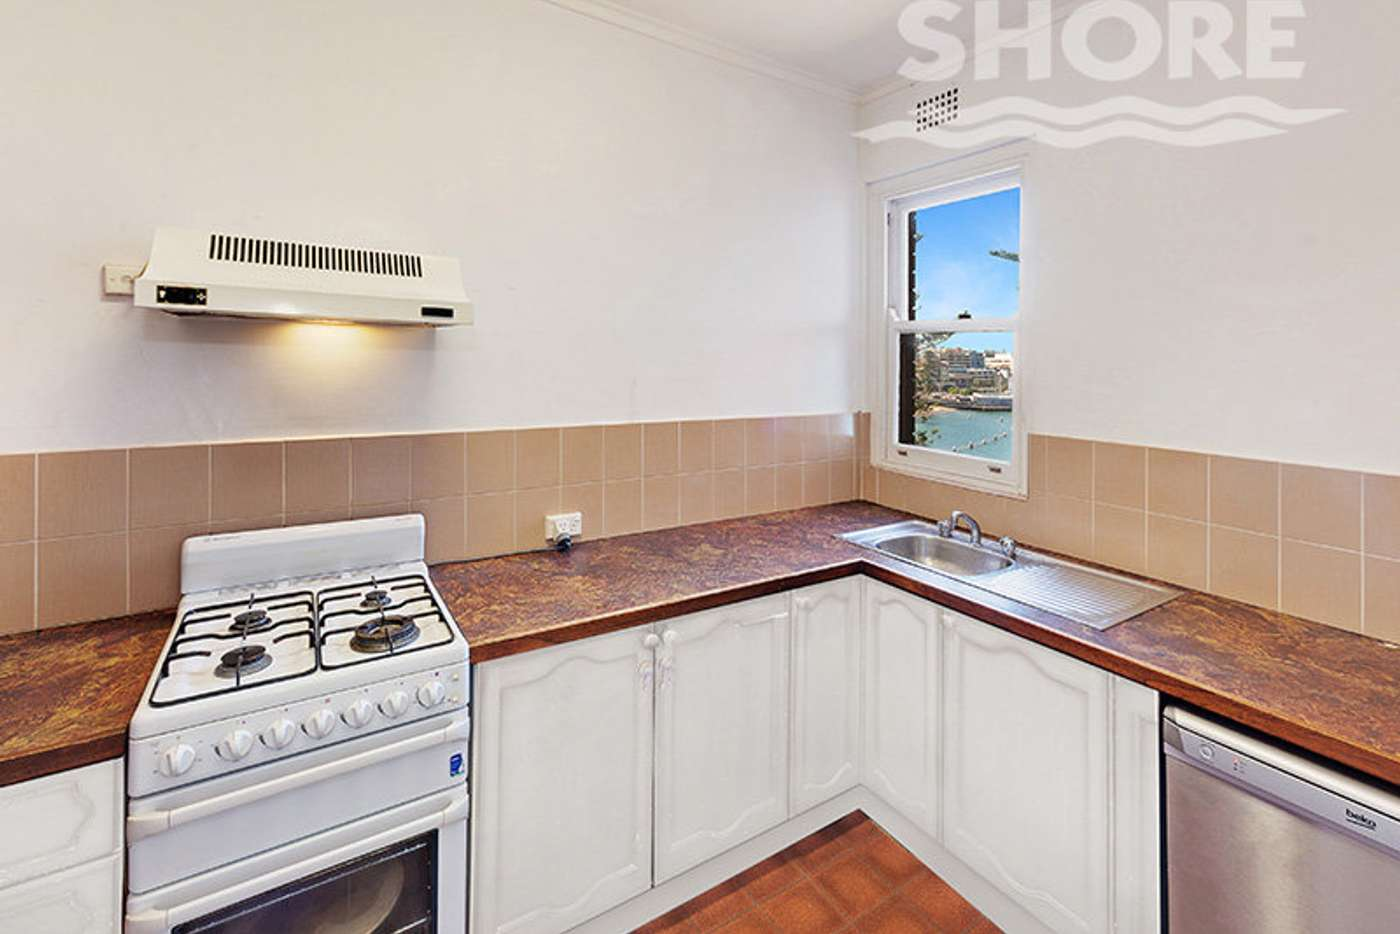 Sixth view of Homely apartment listing, 4/23 Commonwealth Parade, Manly NSW 2095